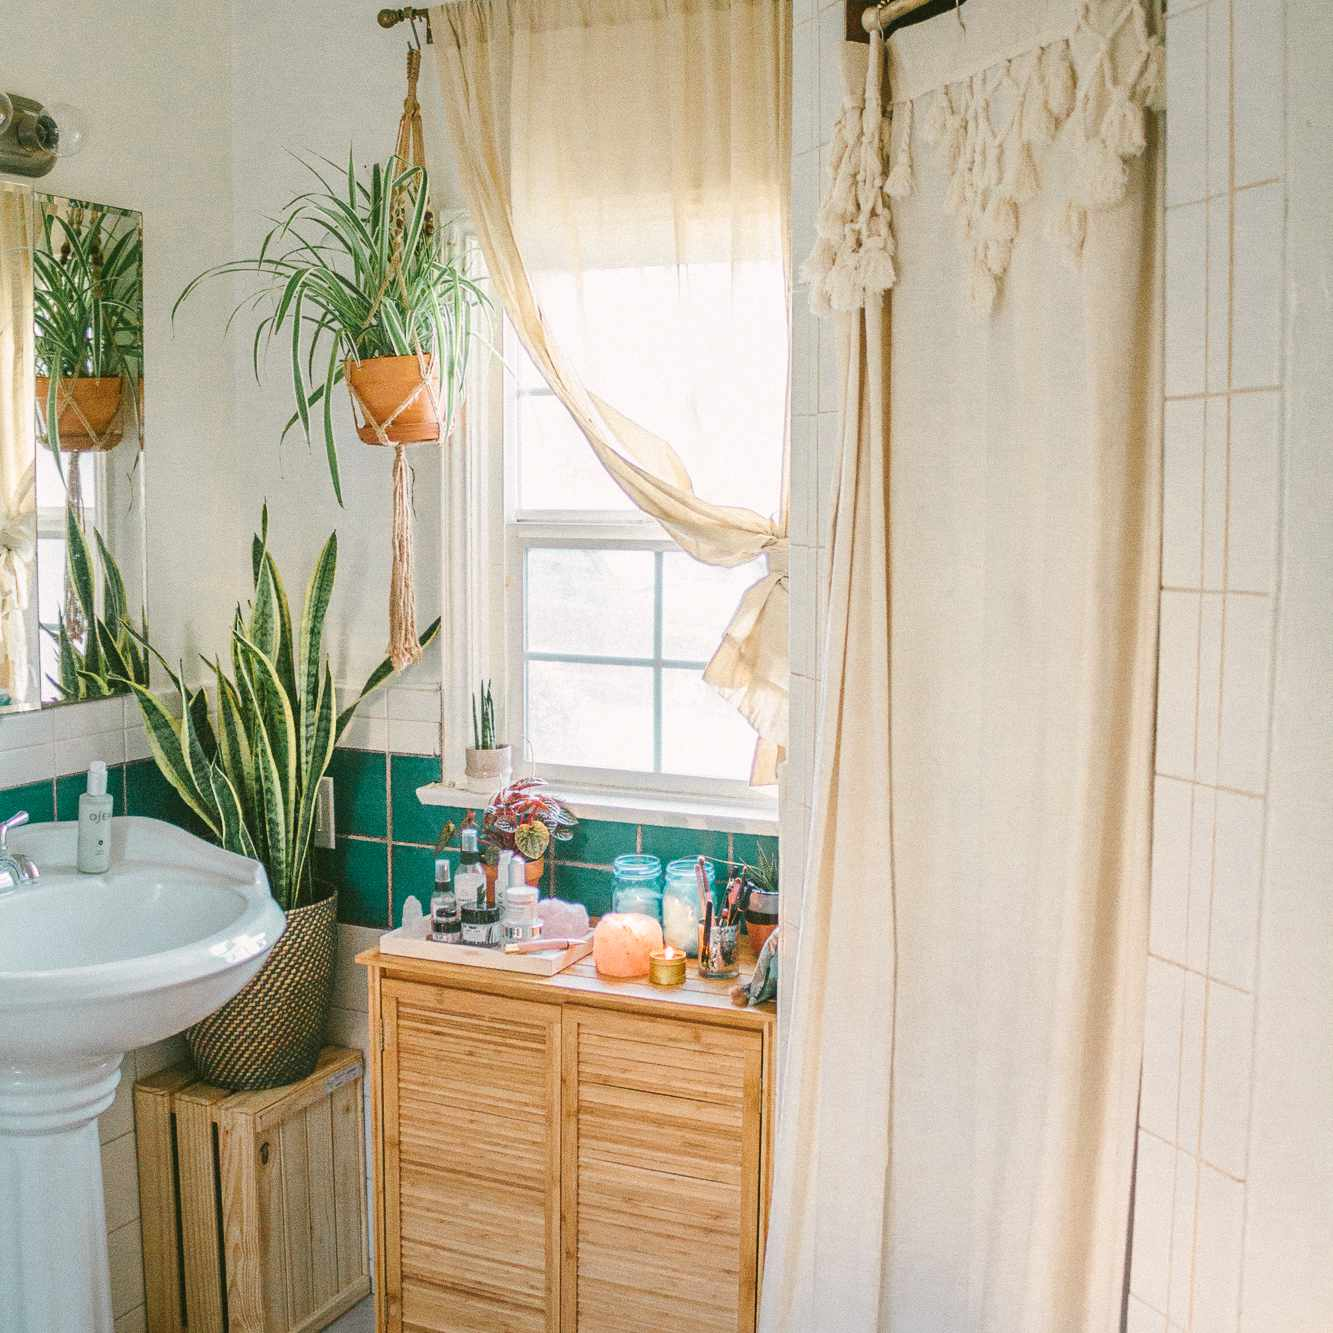 Spider plant hanging in a bright bathroom